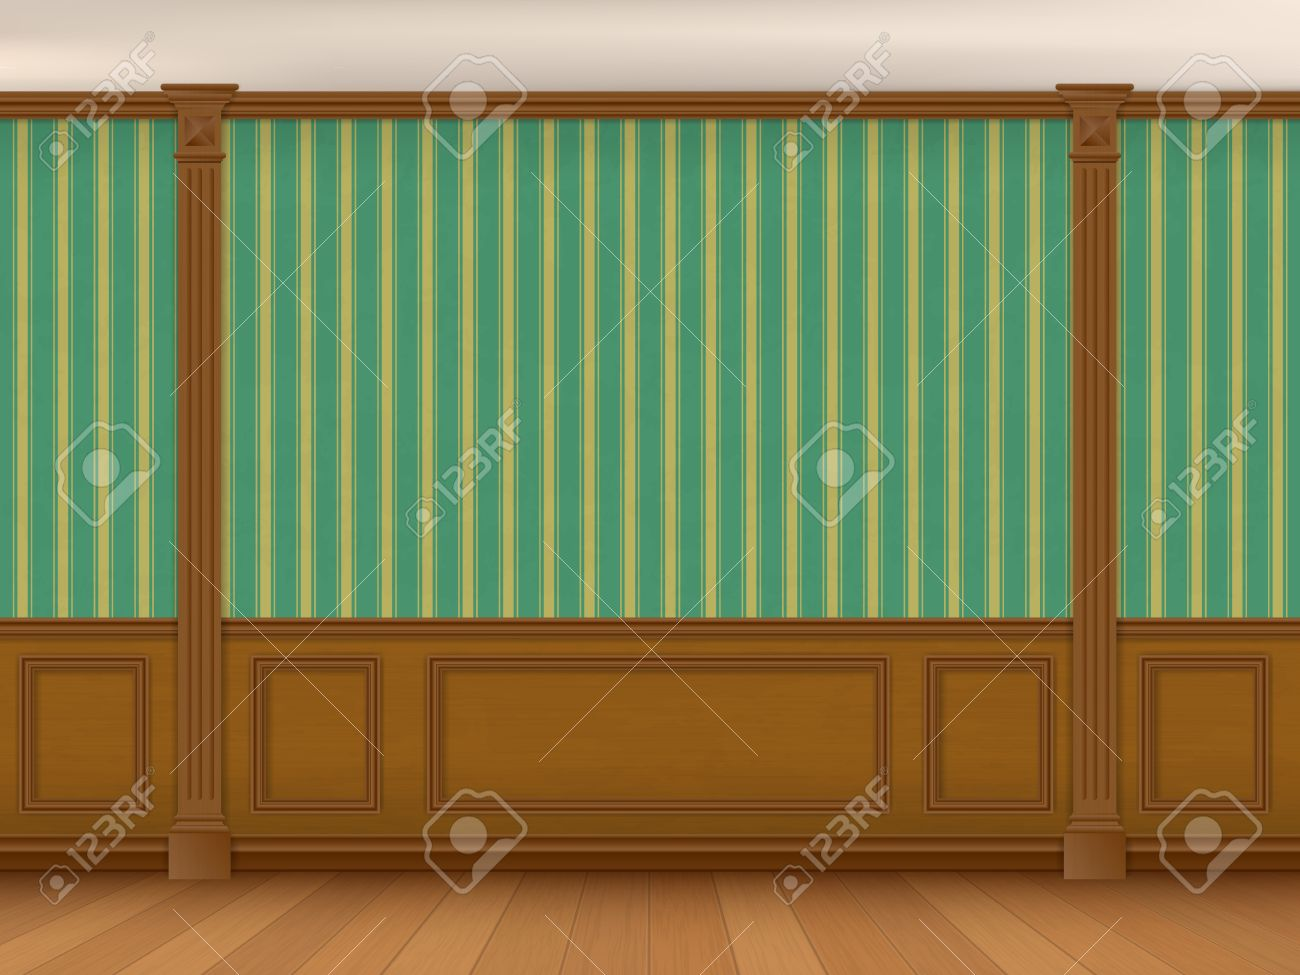 Fragment Of The Interior Cabinet In A Classic Style Wall With Green Striped Wallpaper